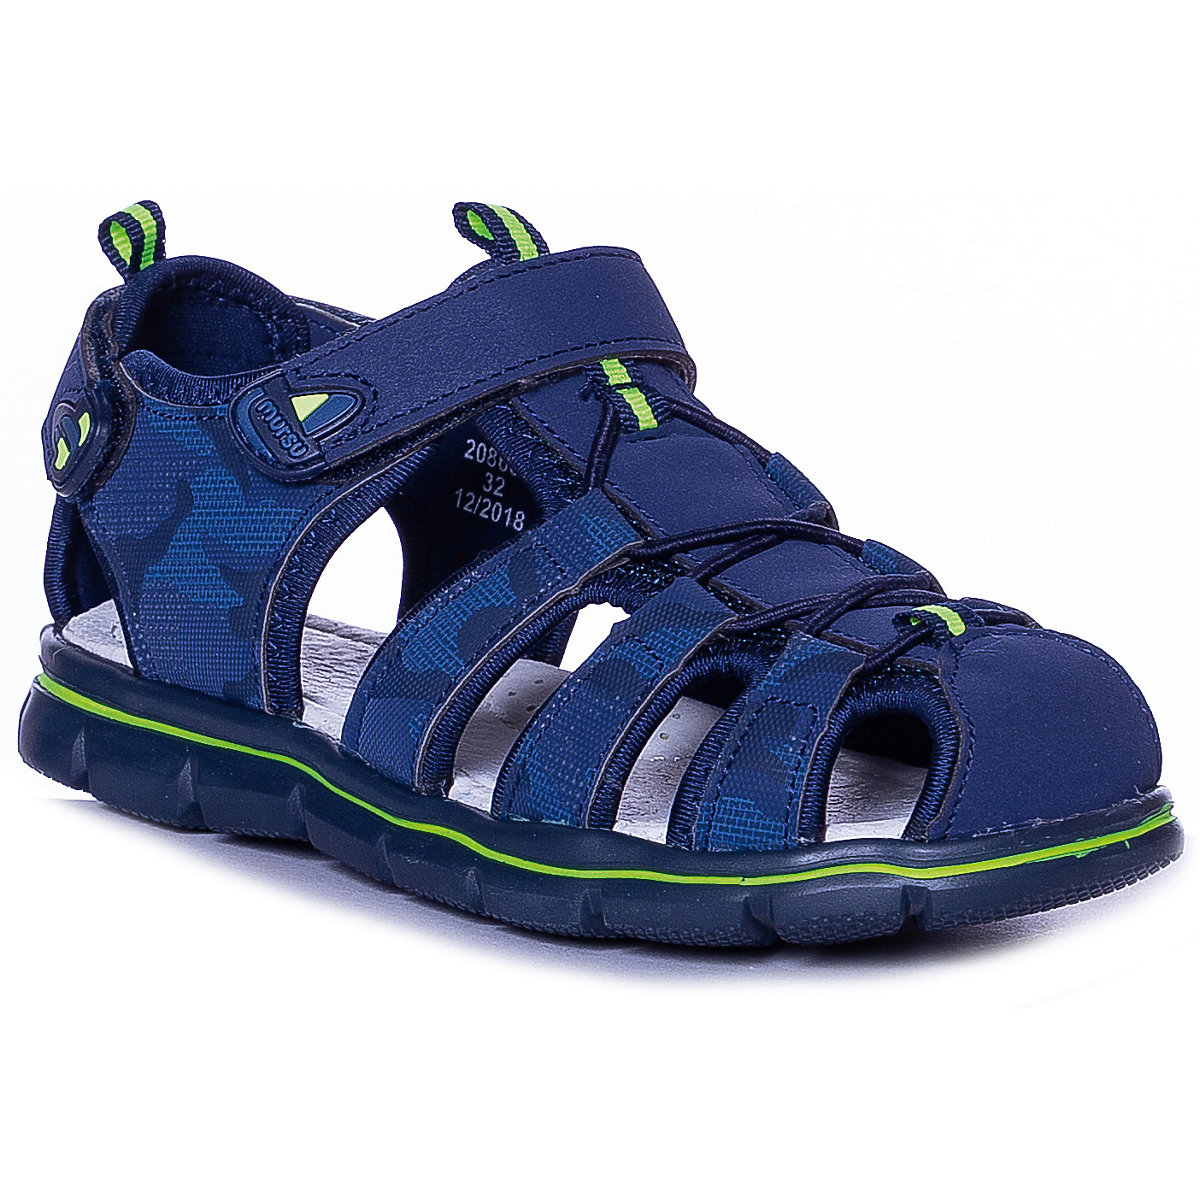 MURSU Sandals 10611933 children's shoes comfortable and light girls and boys sandals adidas s74649 sports and entertainment for boys